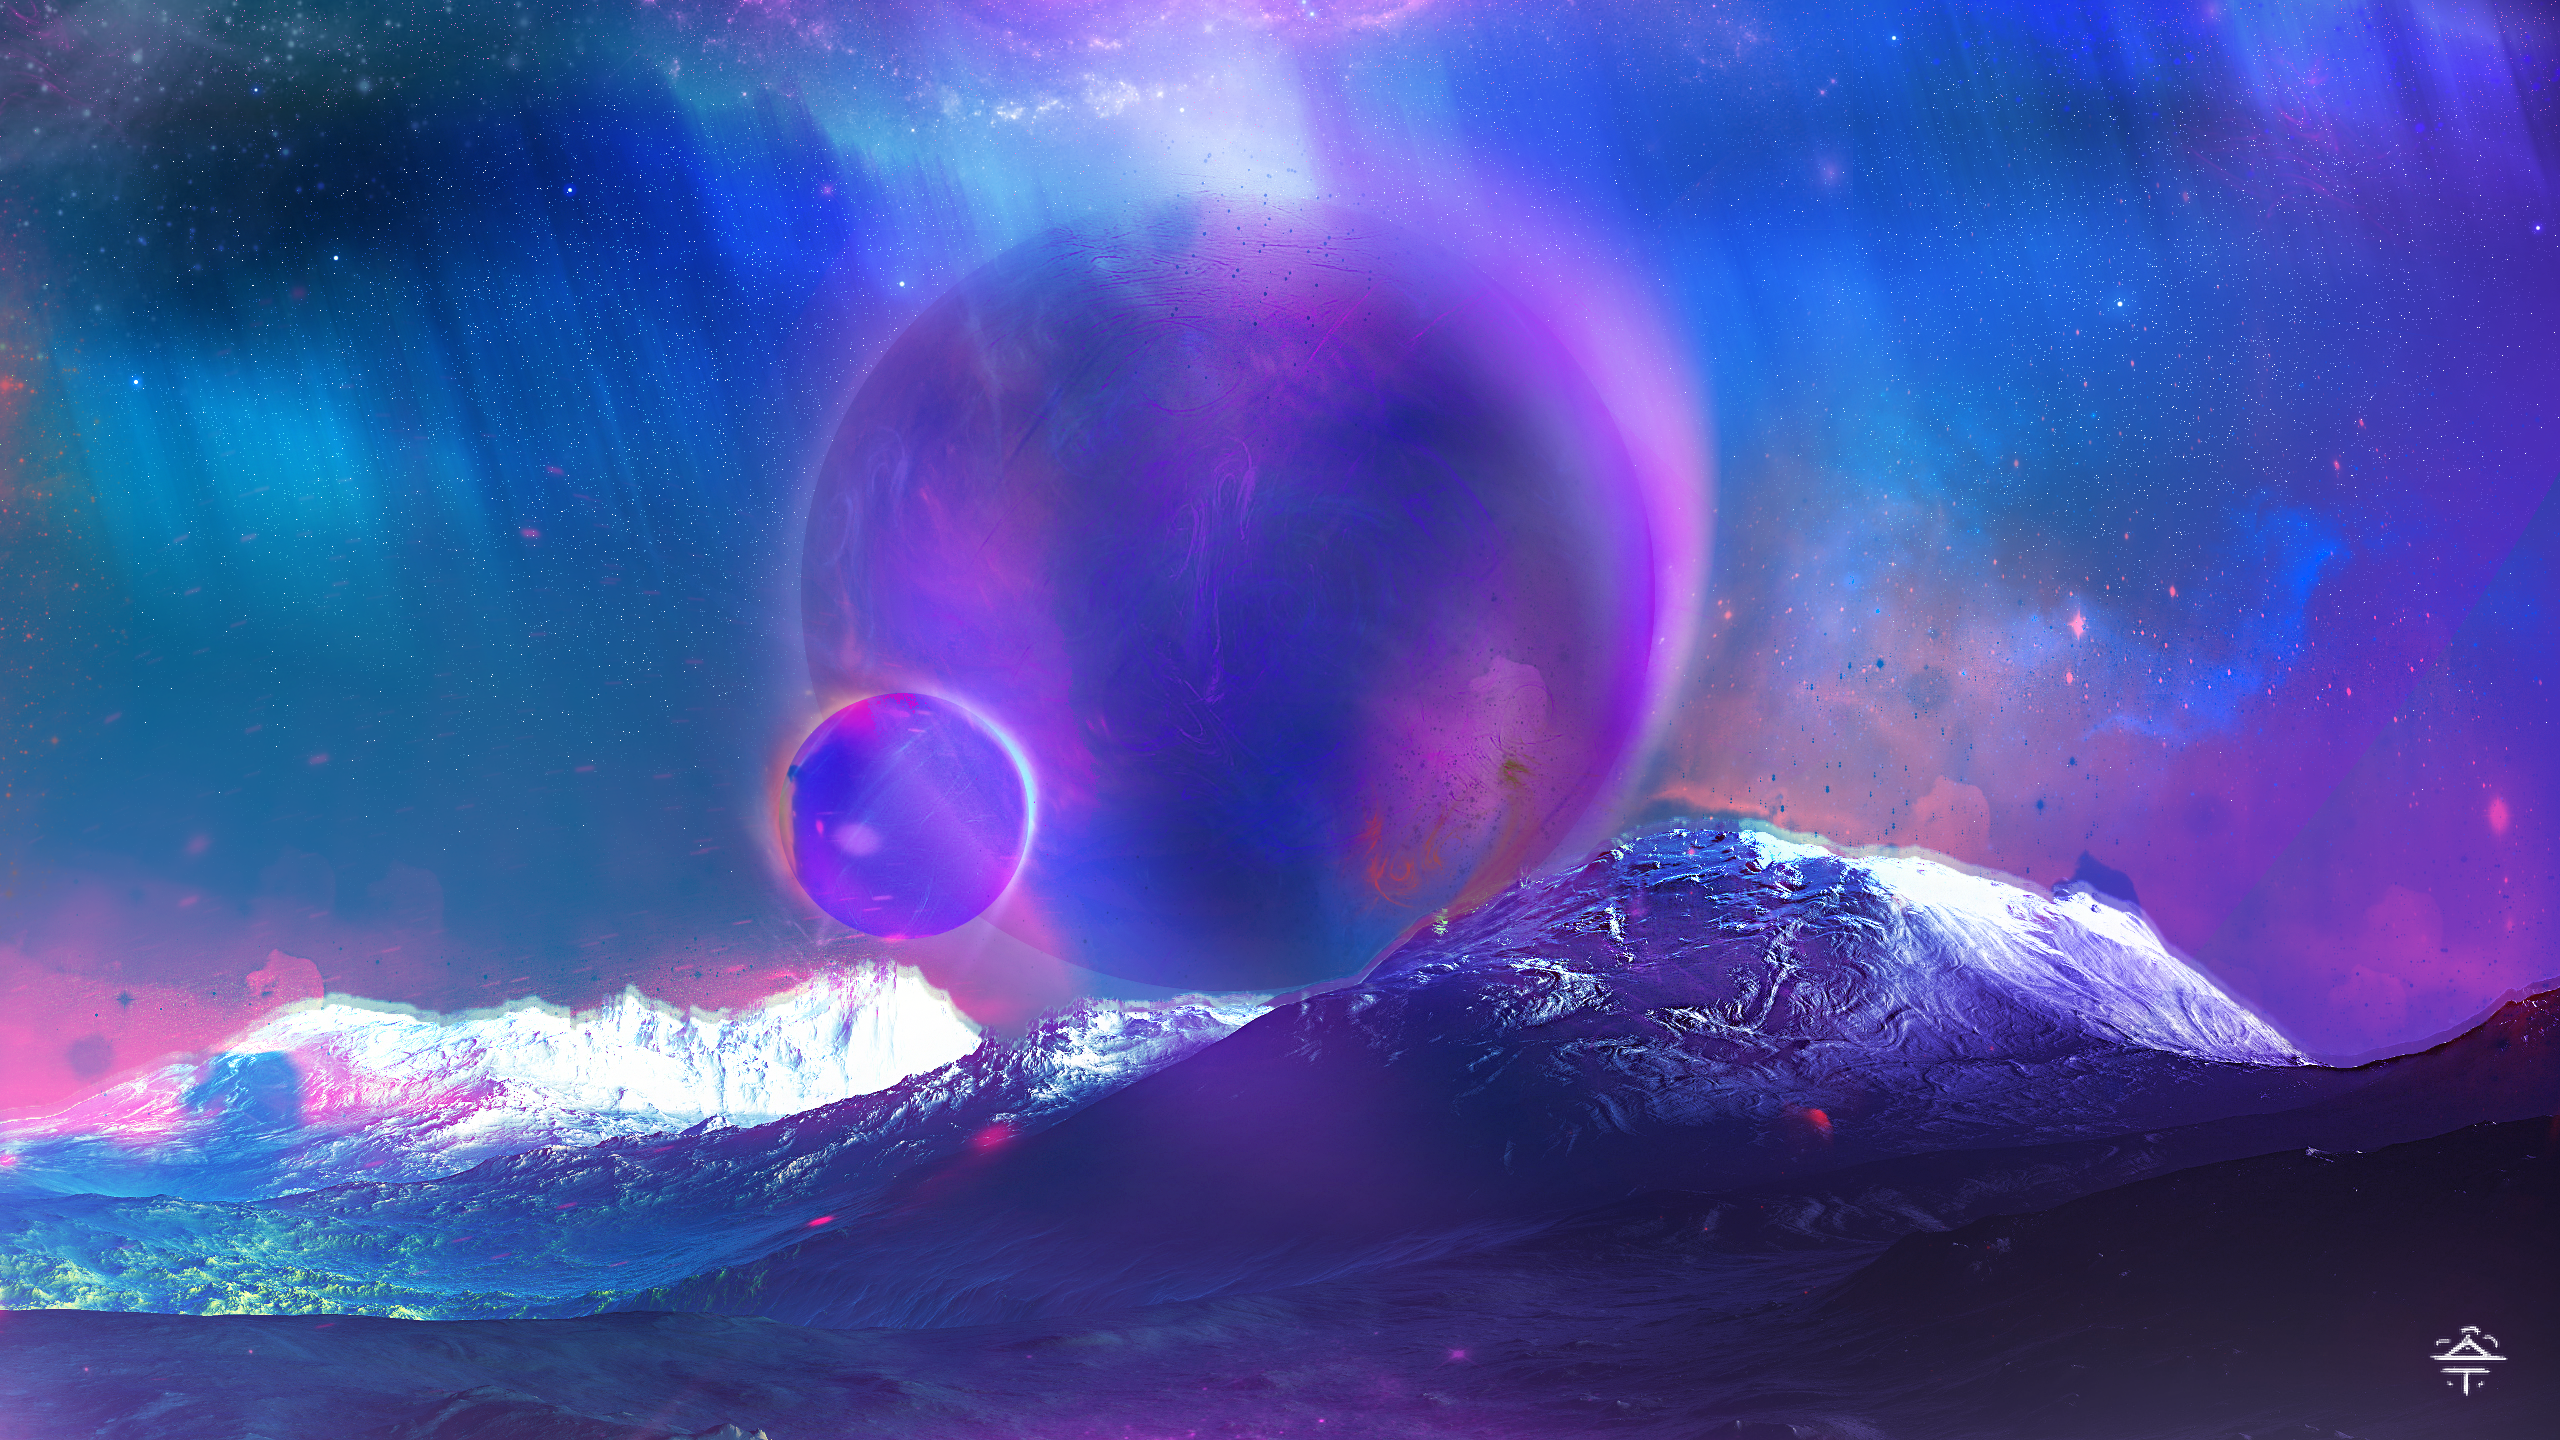 General 2560x1440 digital art space clouds futuristic space art mountains purple background blue background galaxy purple